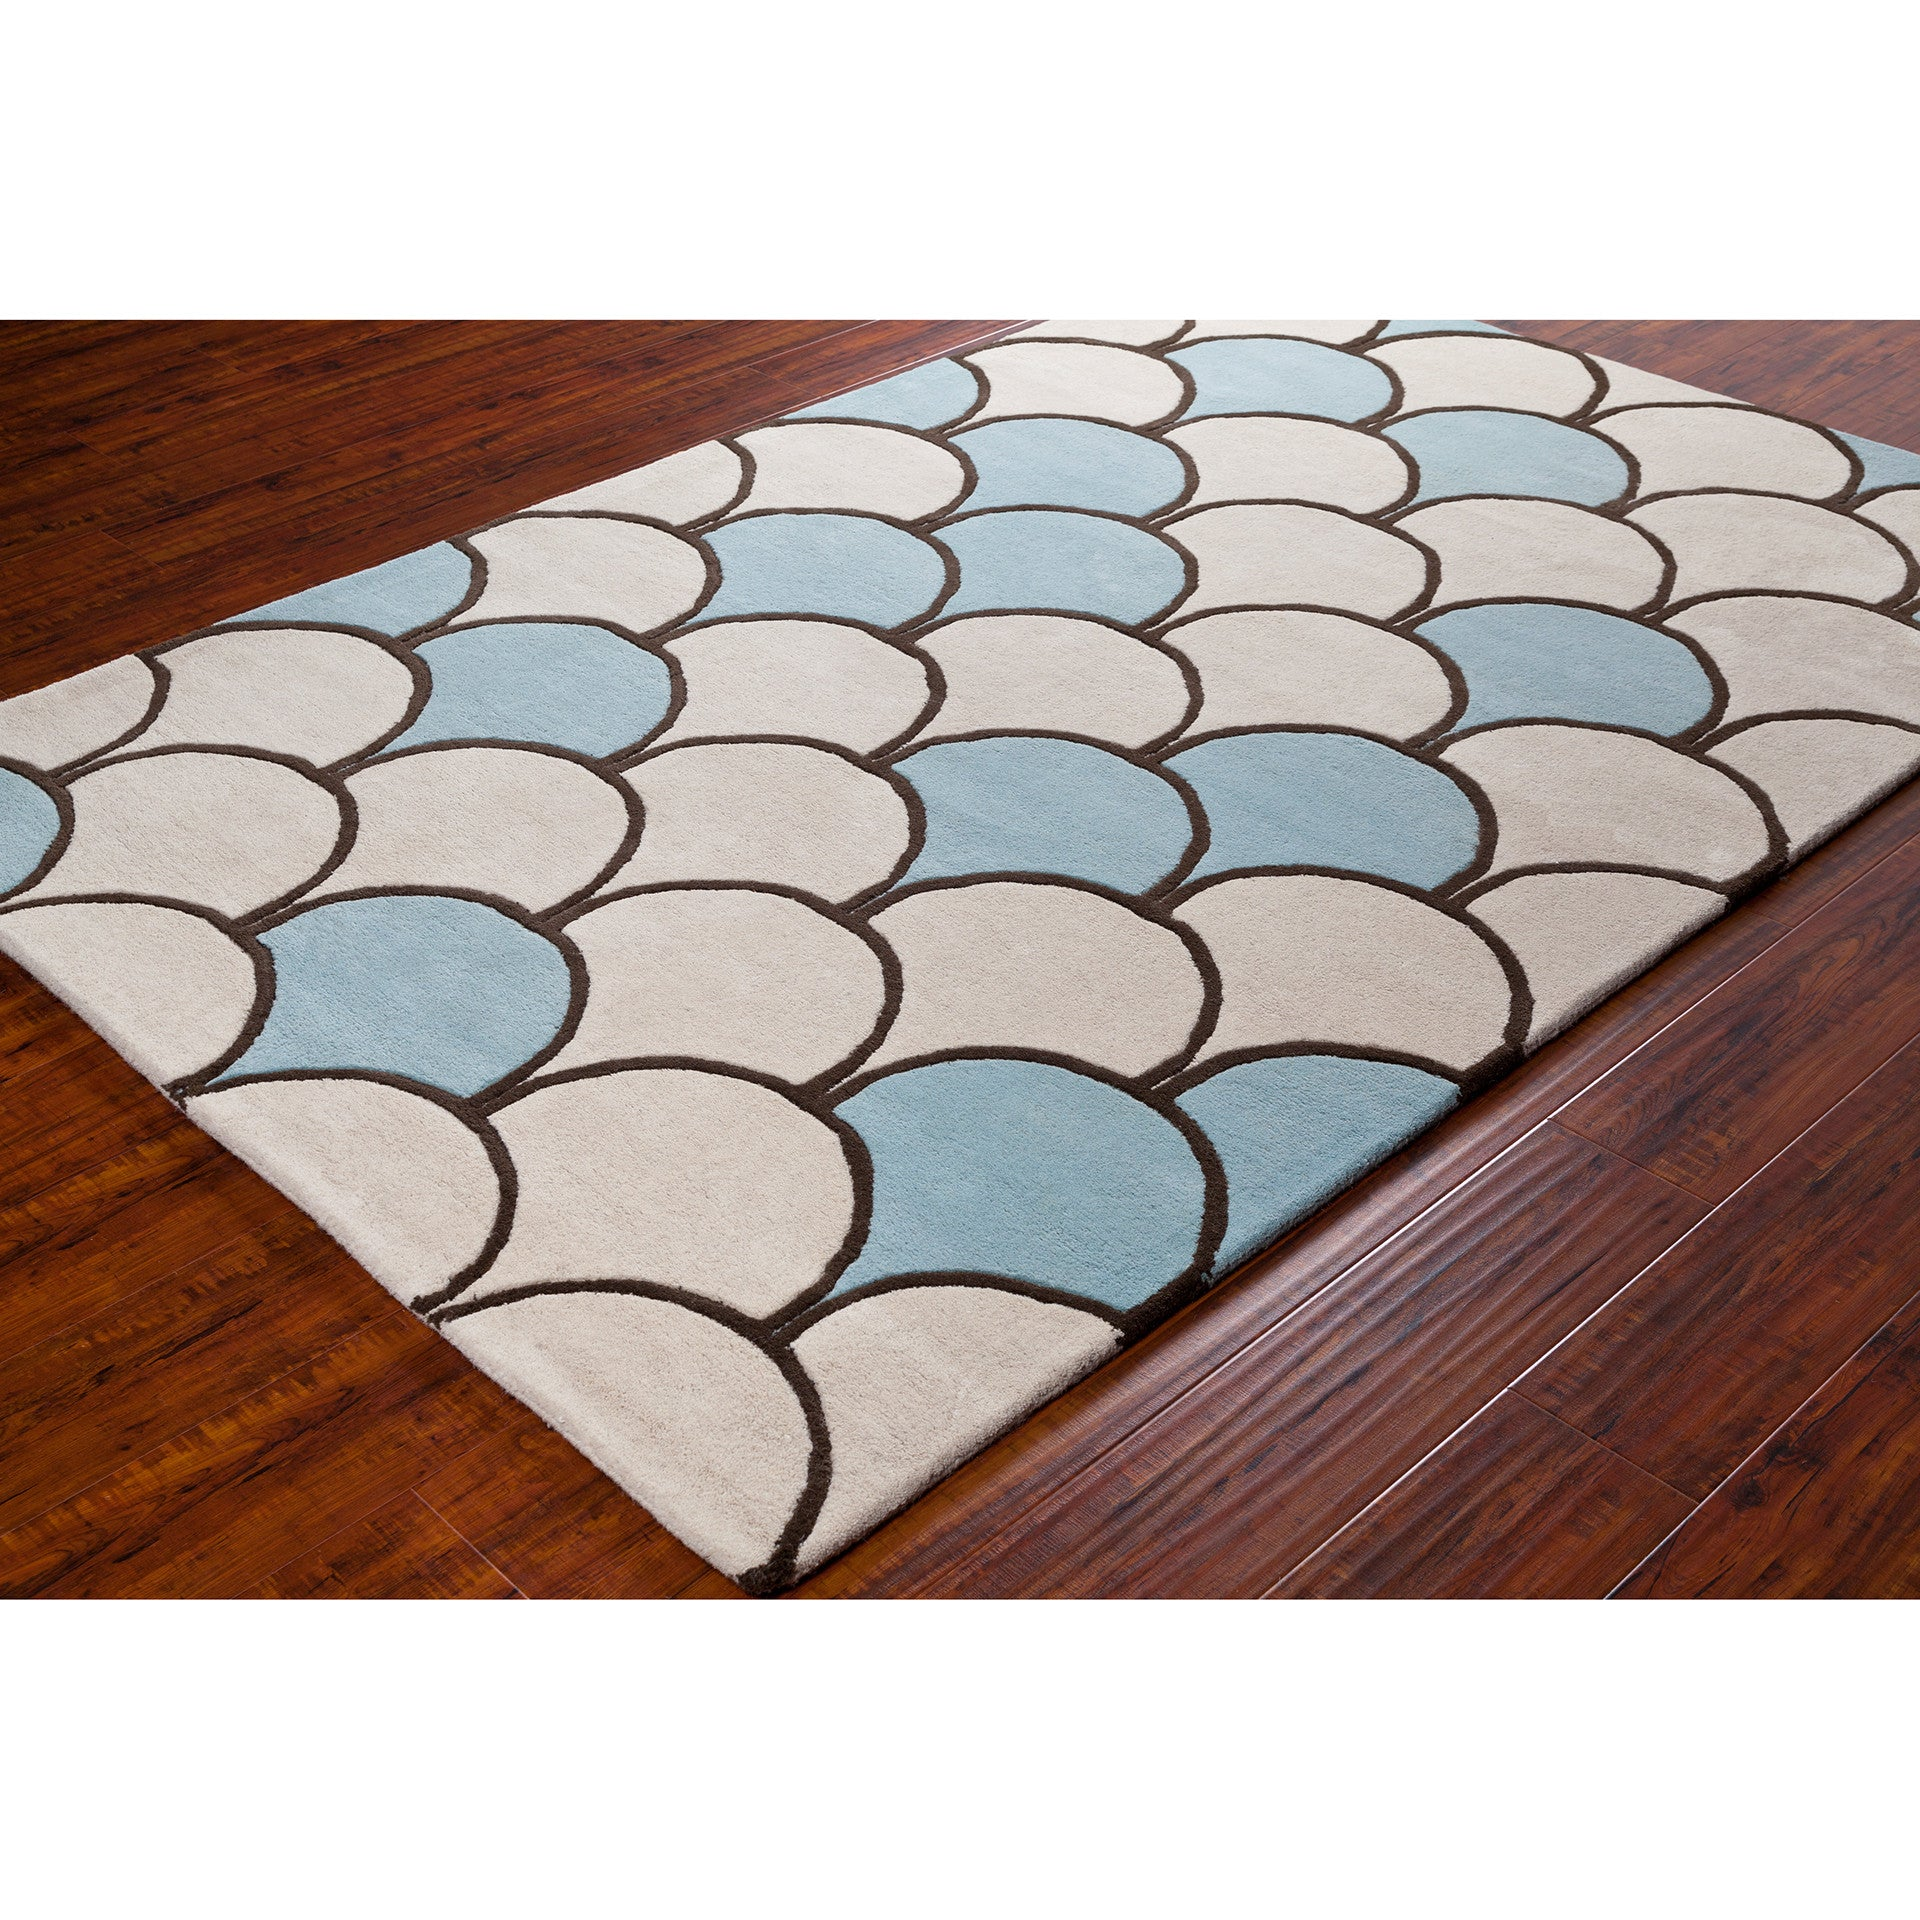 Chandra Stella Patterned Contemporary Wool Beige Aqua Area: Stella Collection Hand-Tufted Area Rug In Cream, Blue